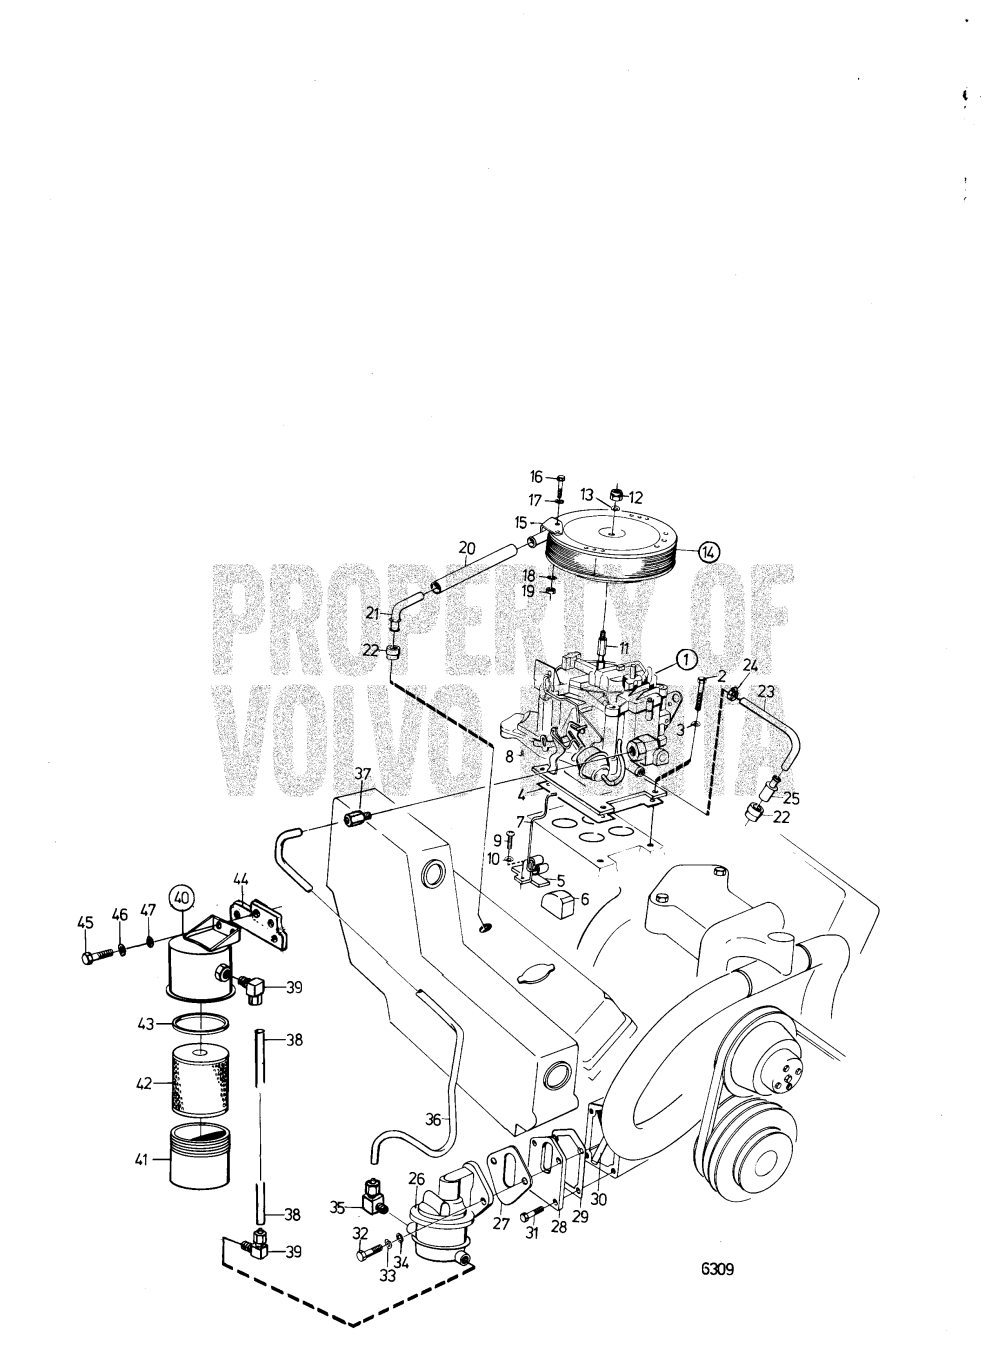 medium resolution of volvo marine gasoline engines aq200c aq200d aq225c aq225d aq255a aq255b fuel system b